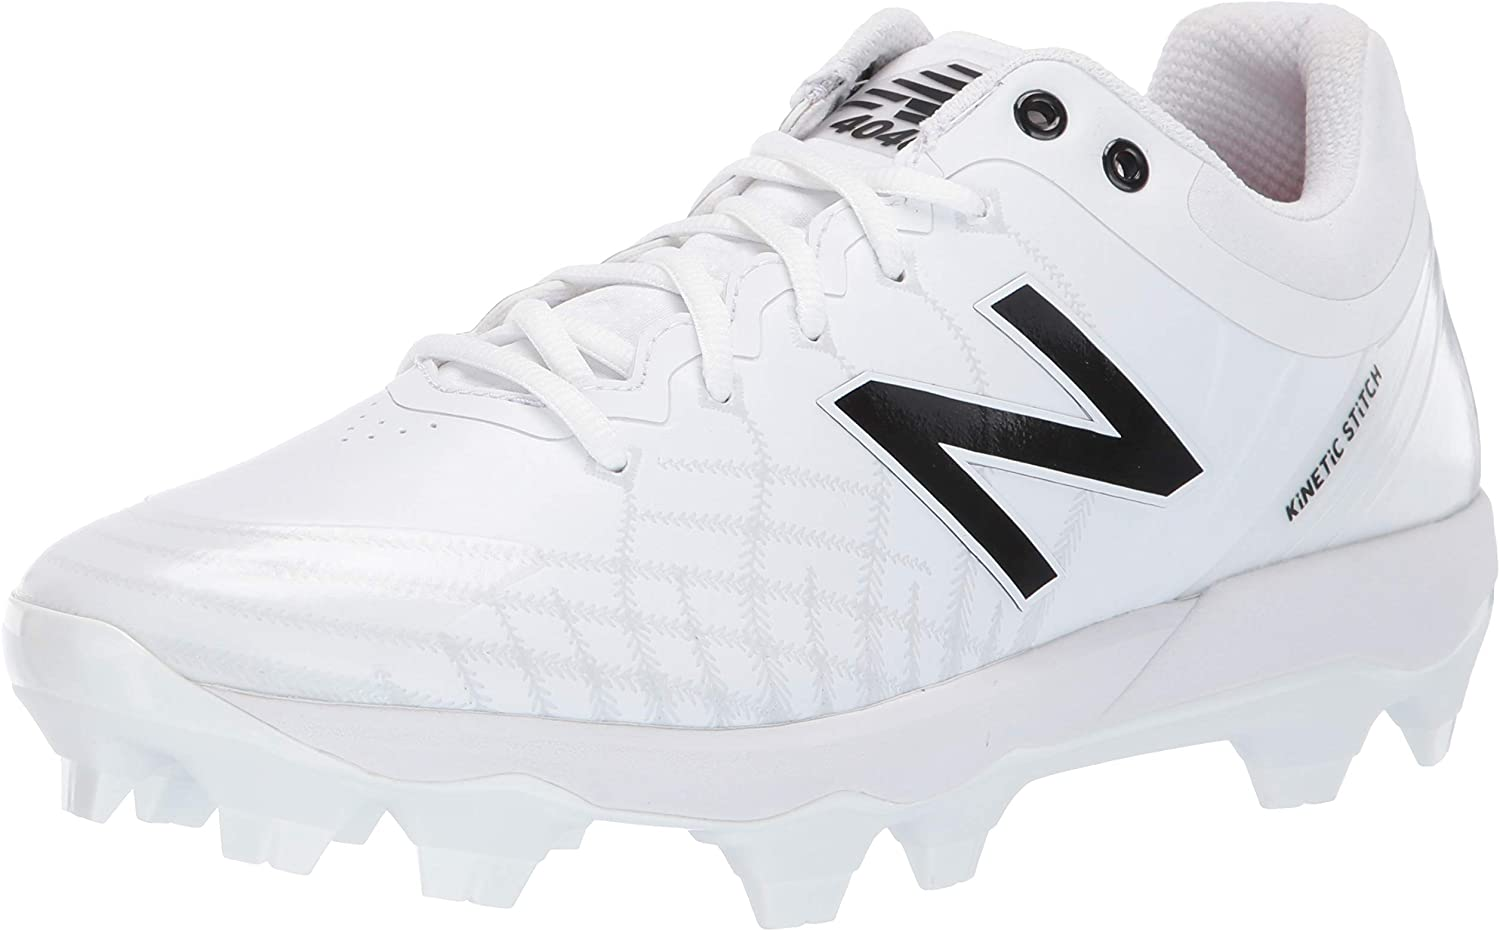 all black new balance cleats